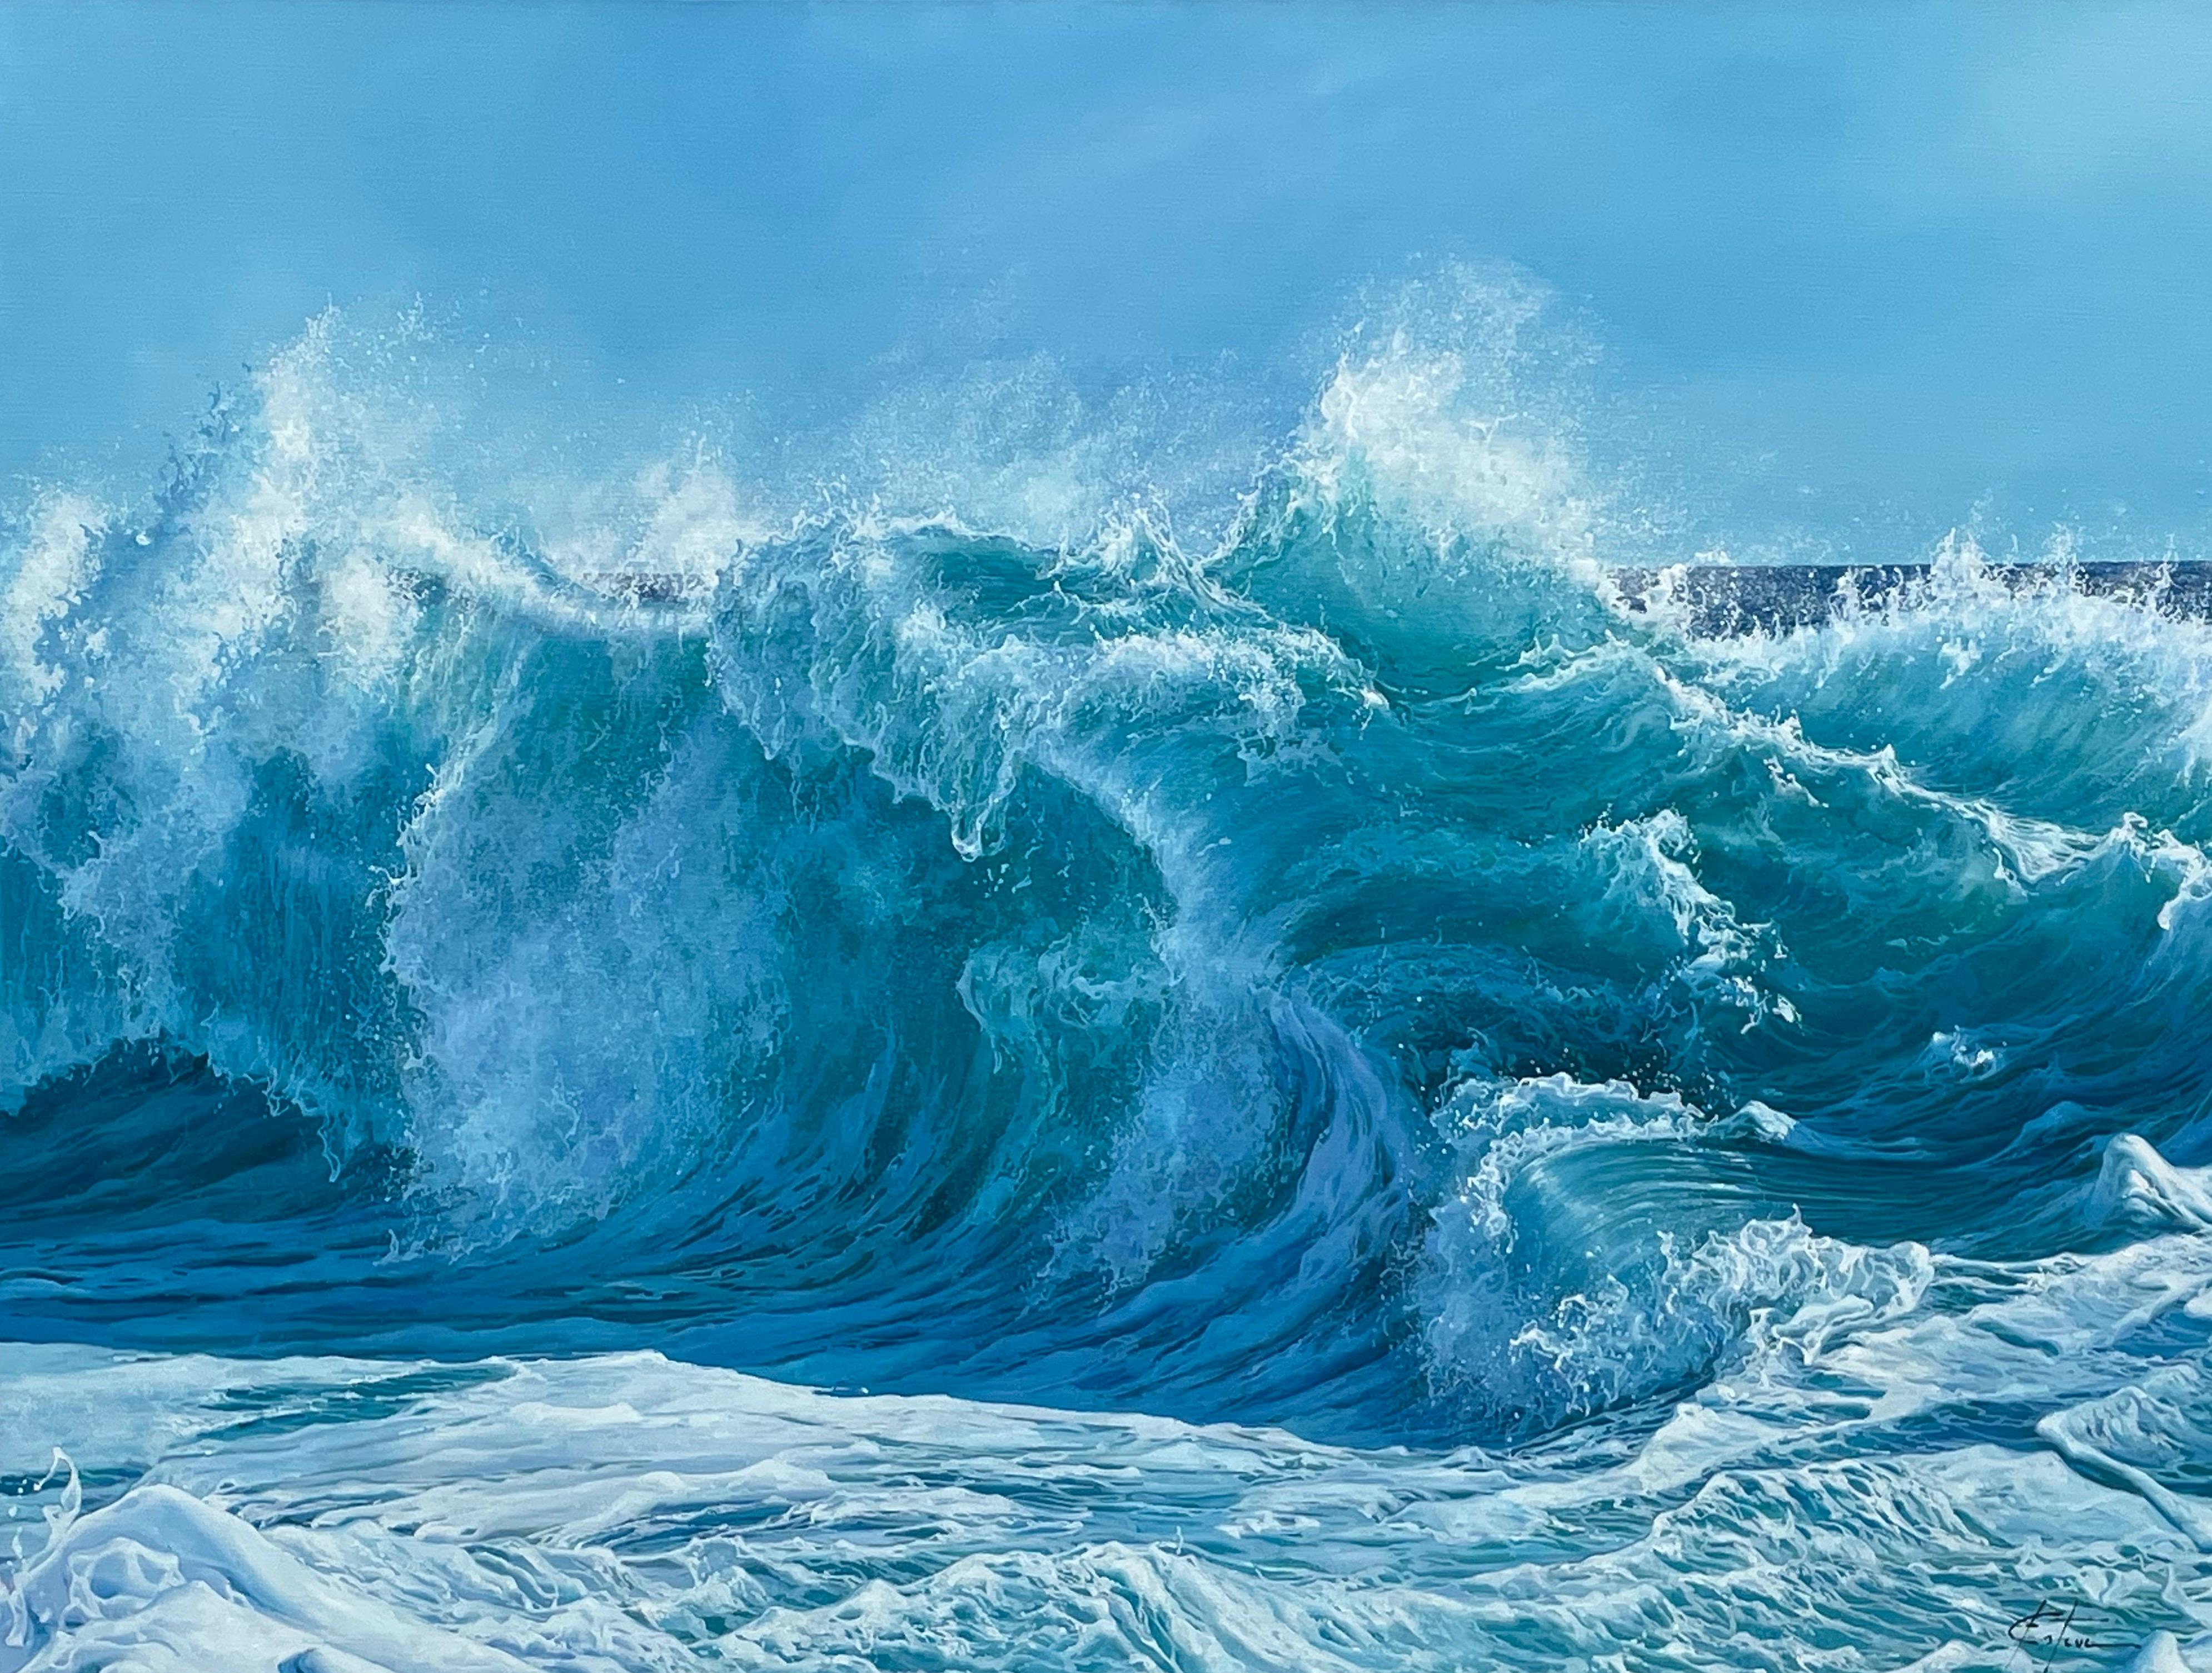 'Wild Blue' Hyperrealist wave painting of a crashing wave photographic by Esteve